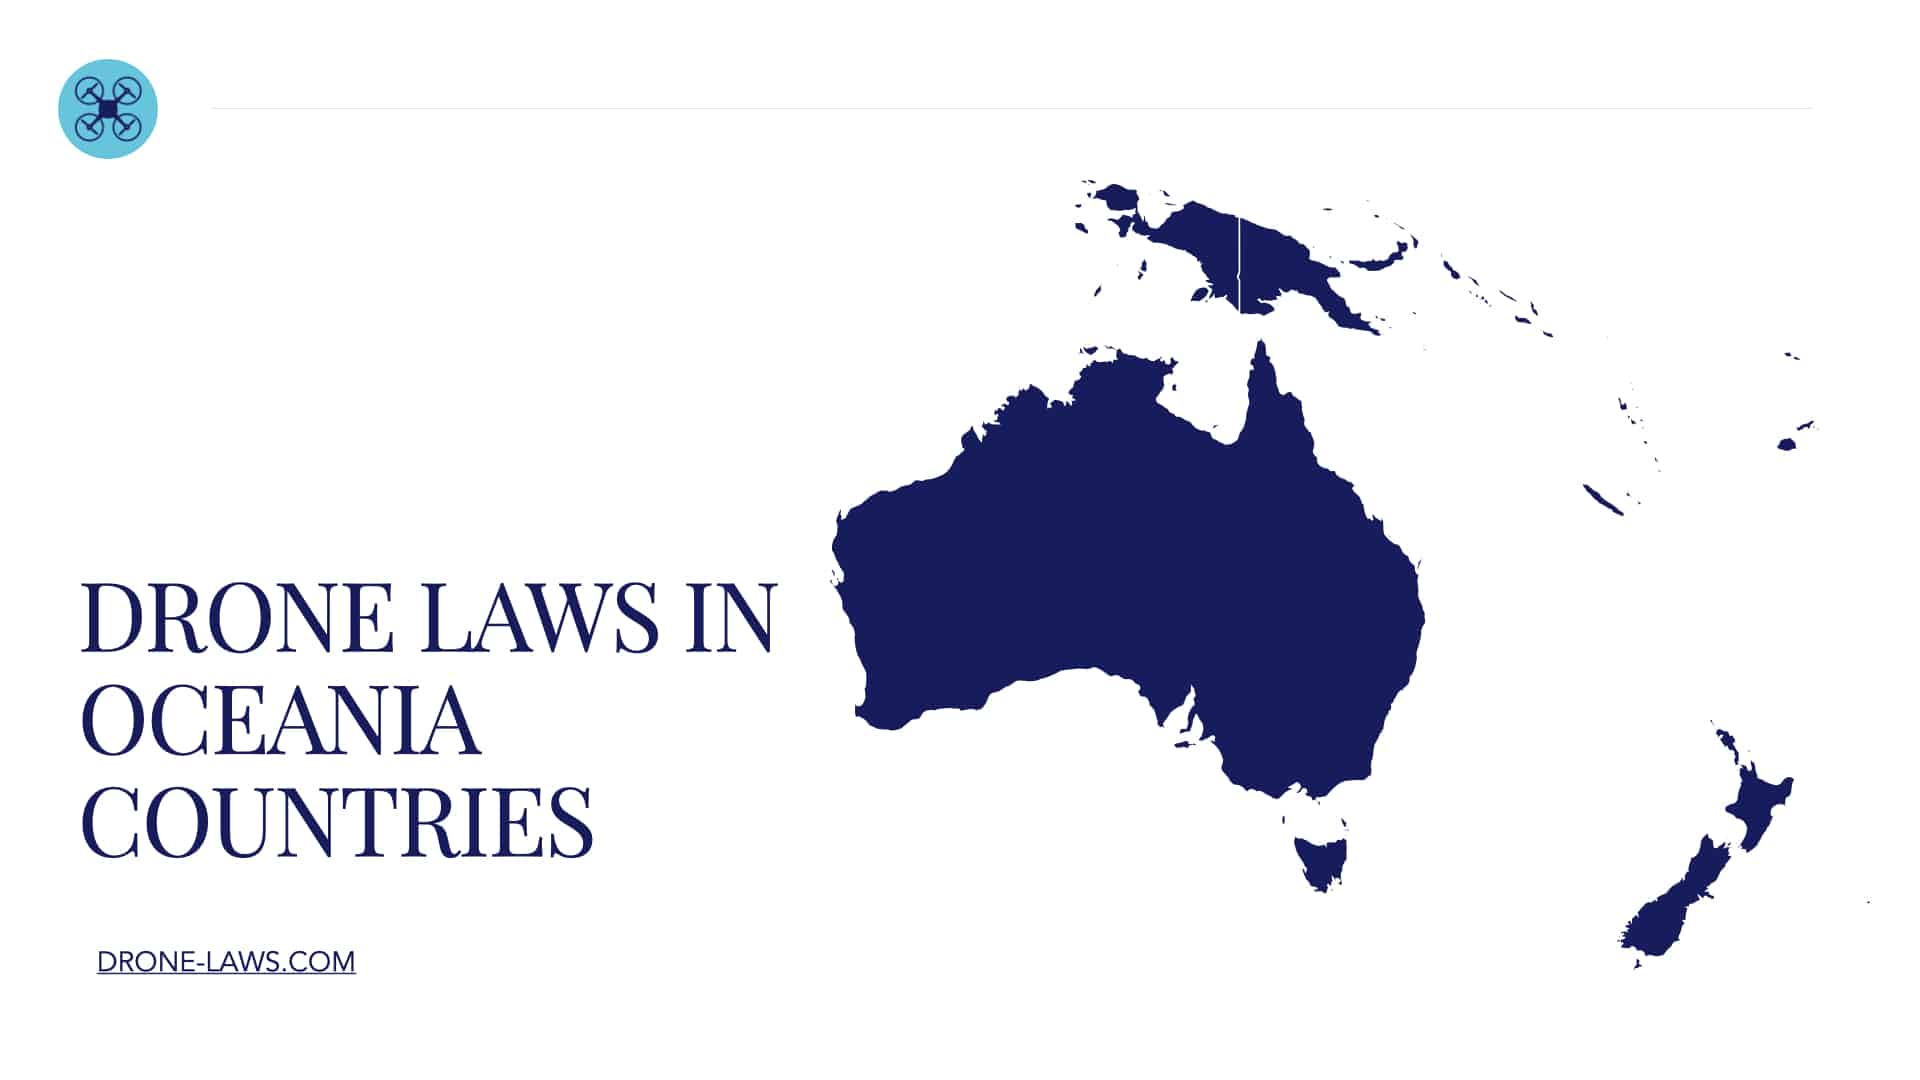 Drone Laws in Oceania Countries